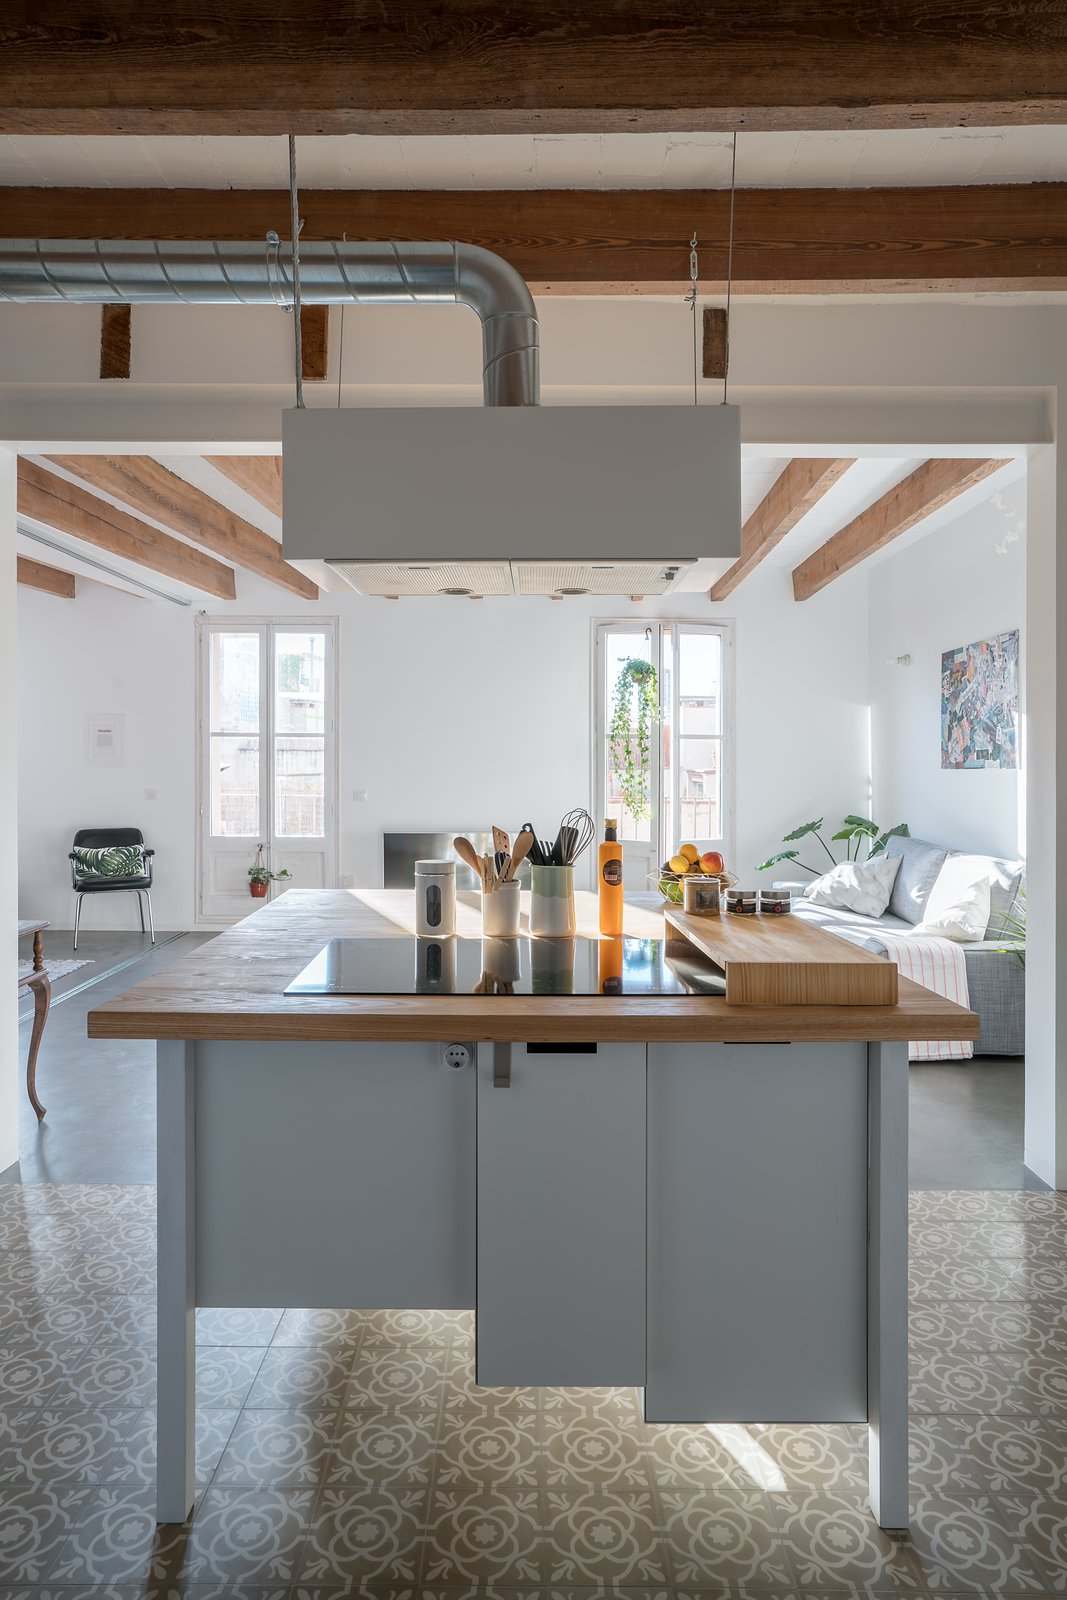 Kitchen, Ceramic Tile Floor, Wood Counter, and White Cabinet Kitchen Table  Old Town Refurbishment by Habitan Architects